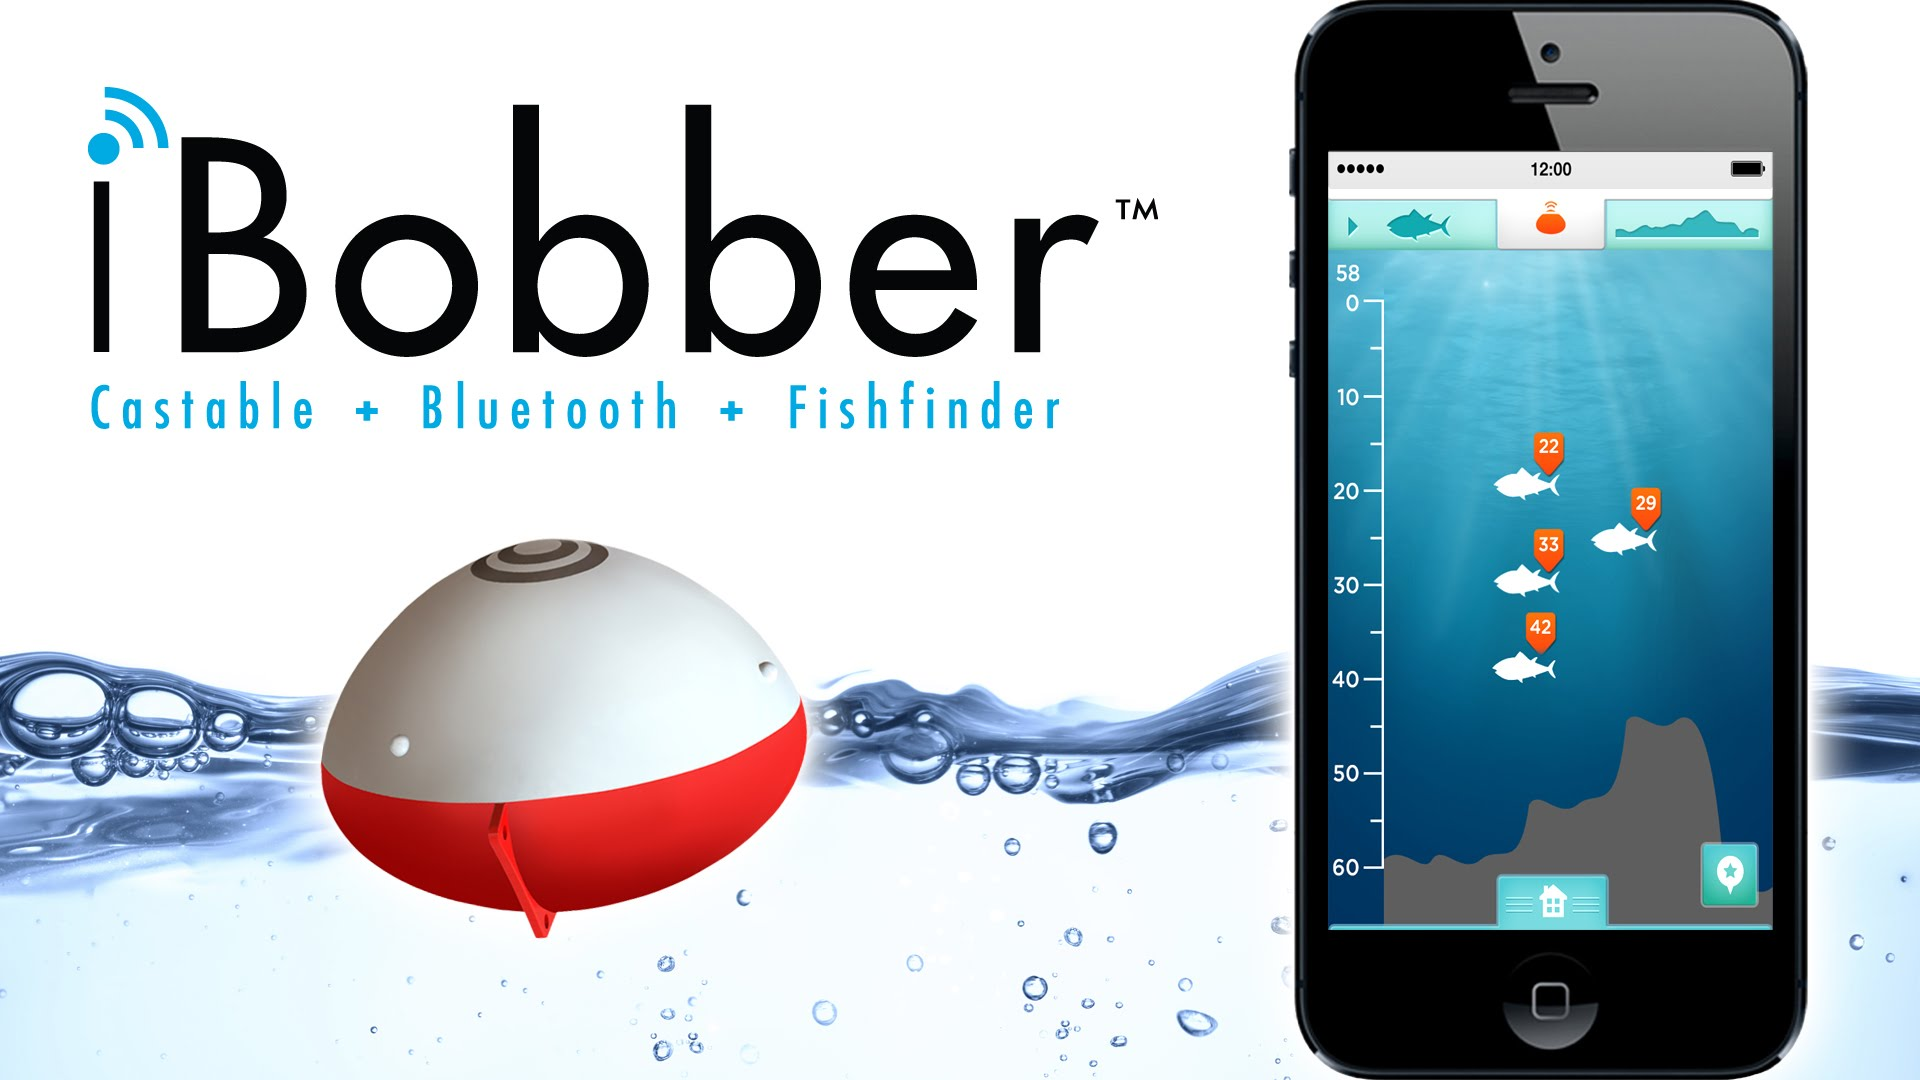 Ibobber fish finder buffercode for Castable fish finder